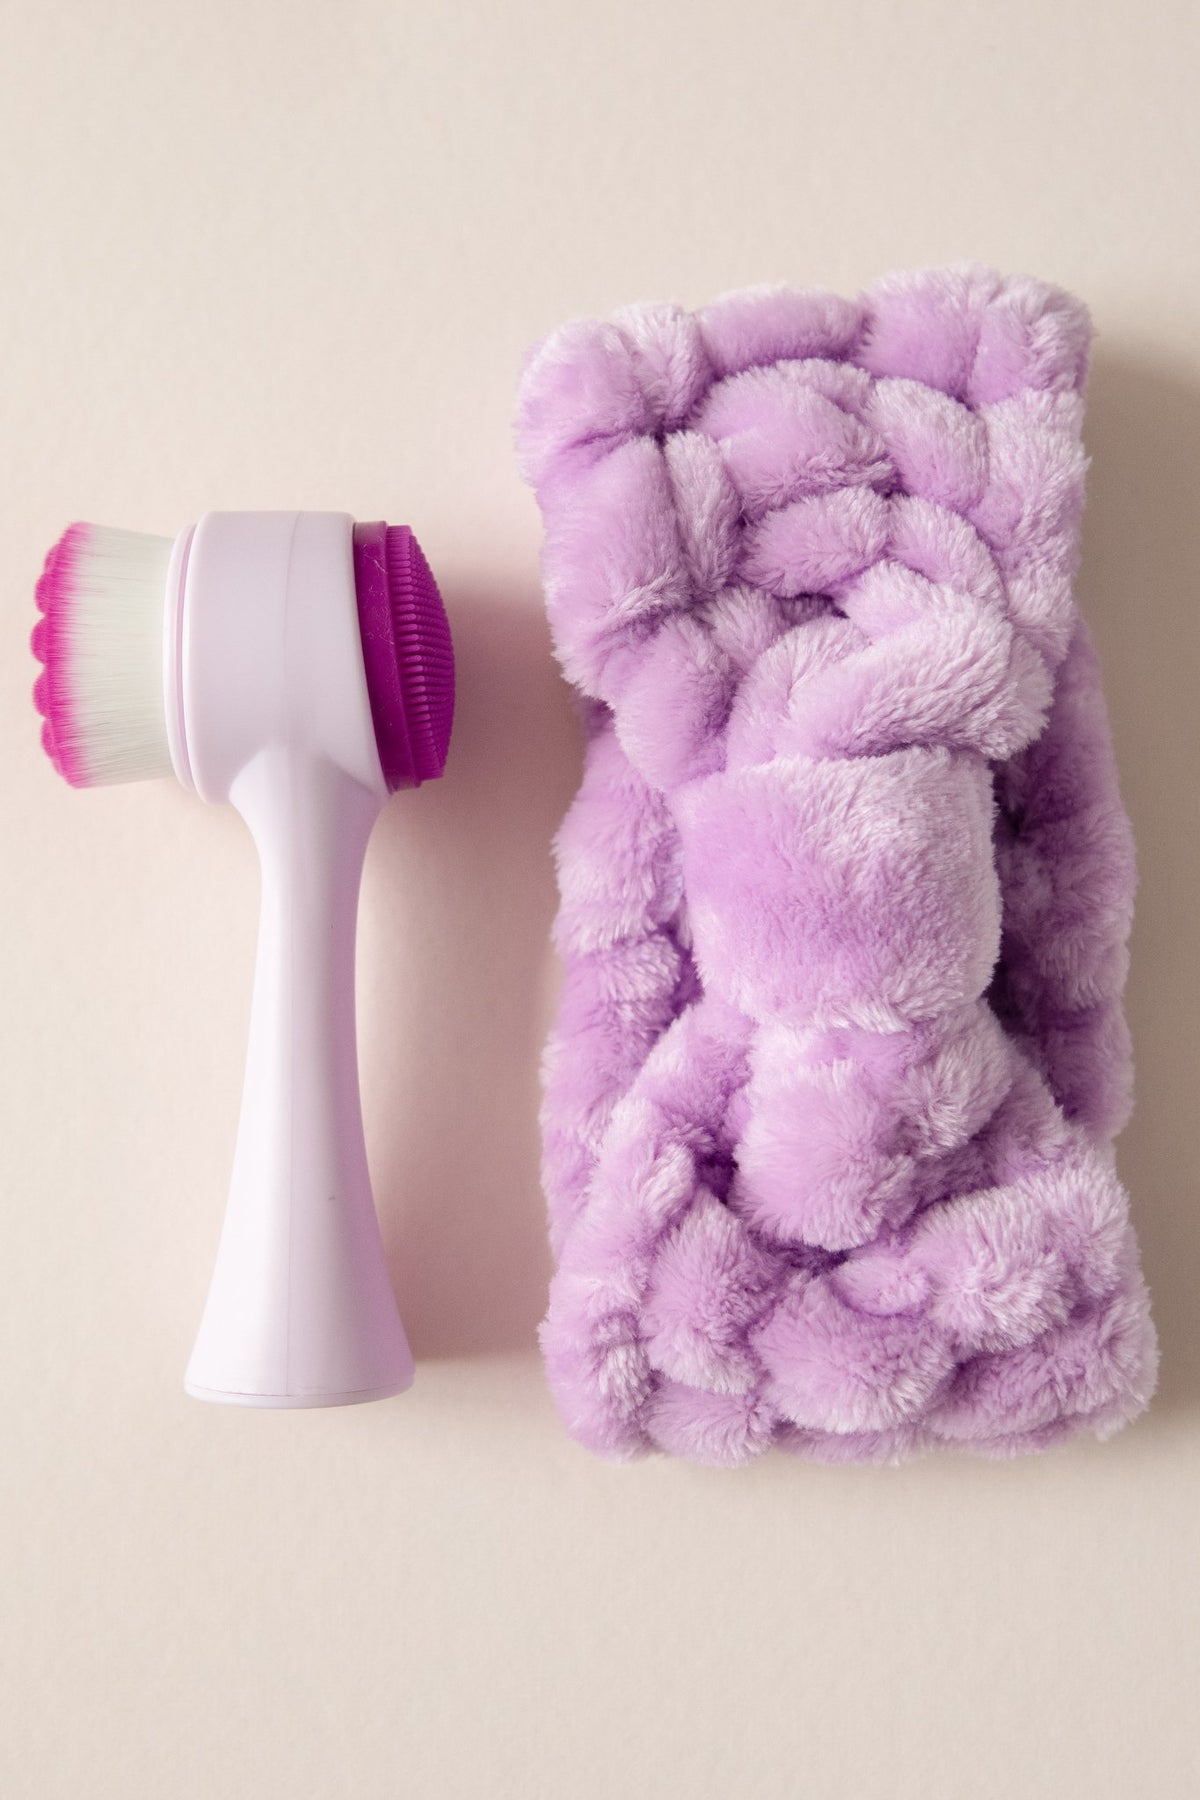 Facial Brush & Headband Set in Purple